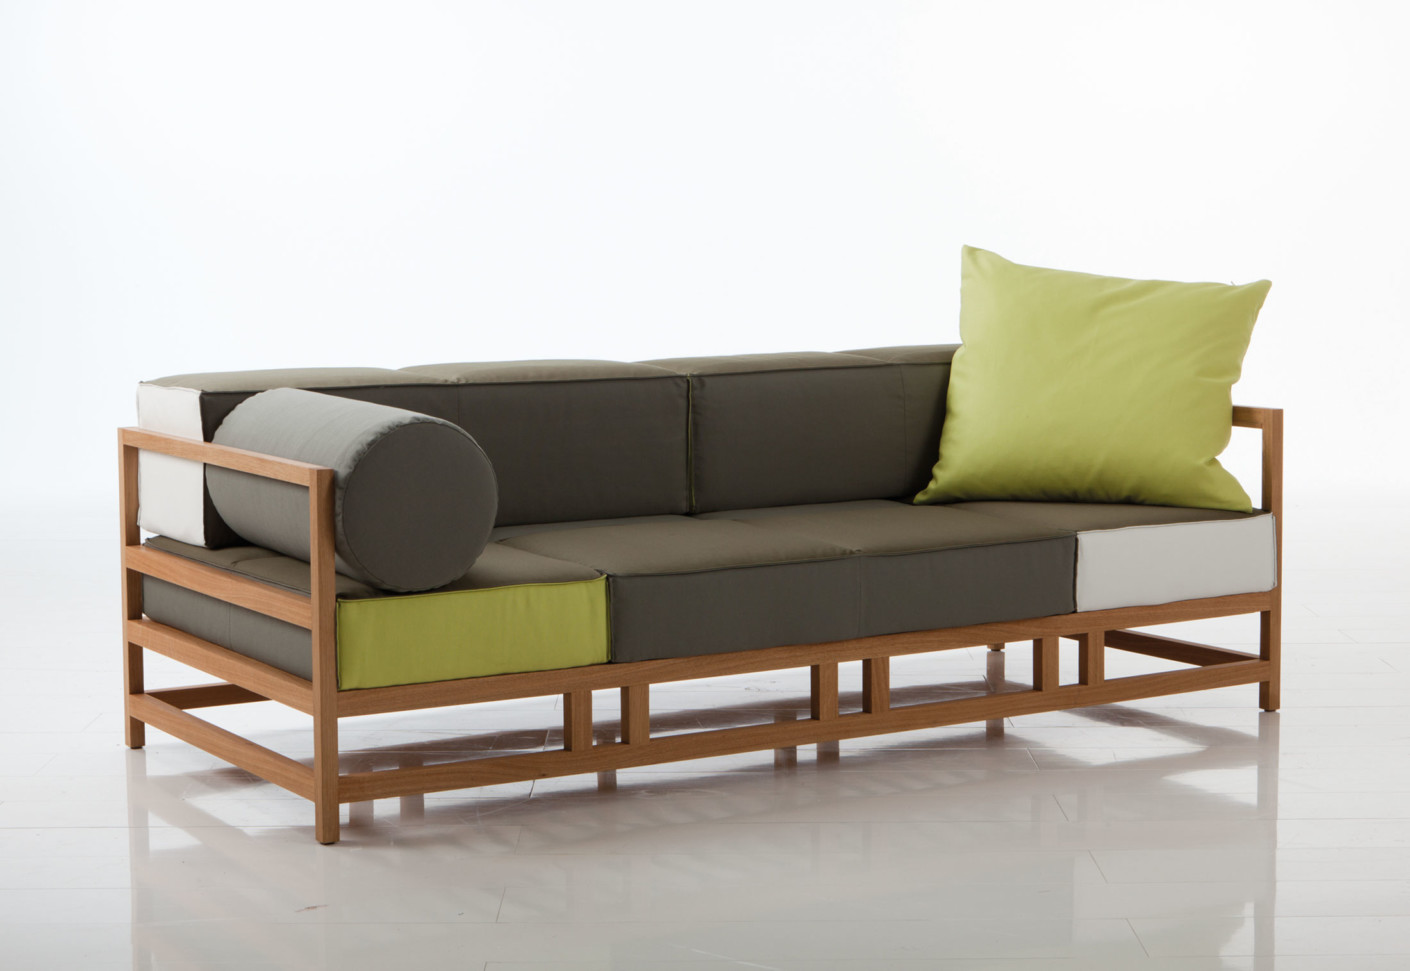 Easy Pieces sofa by Brühl | STYLEPARK